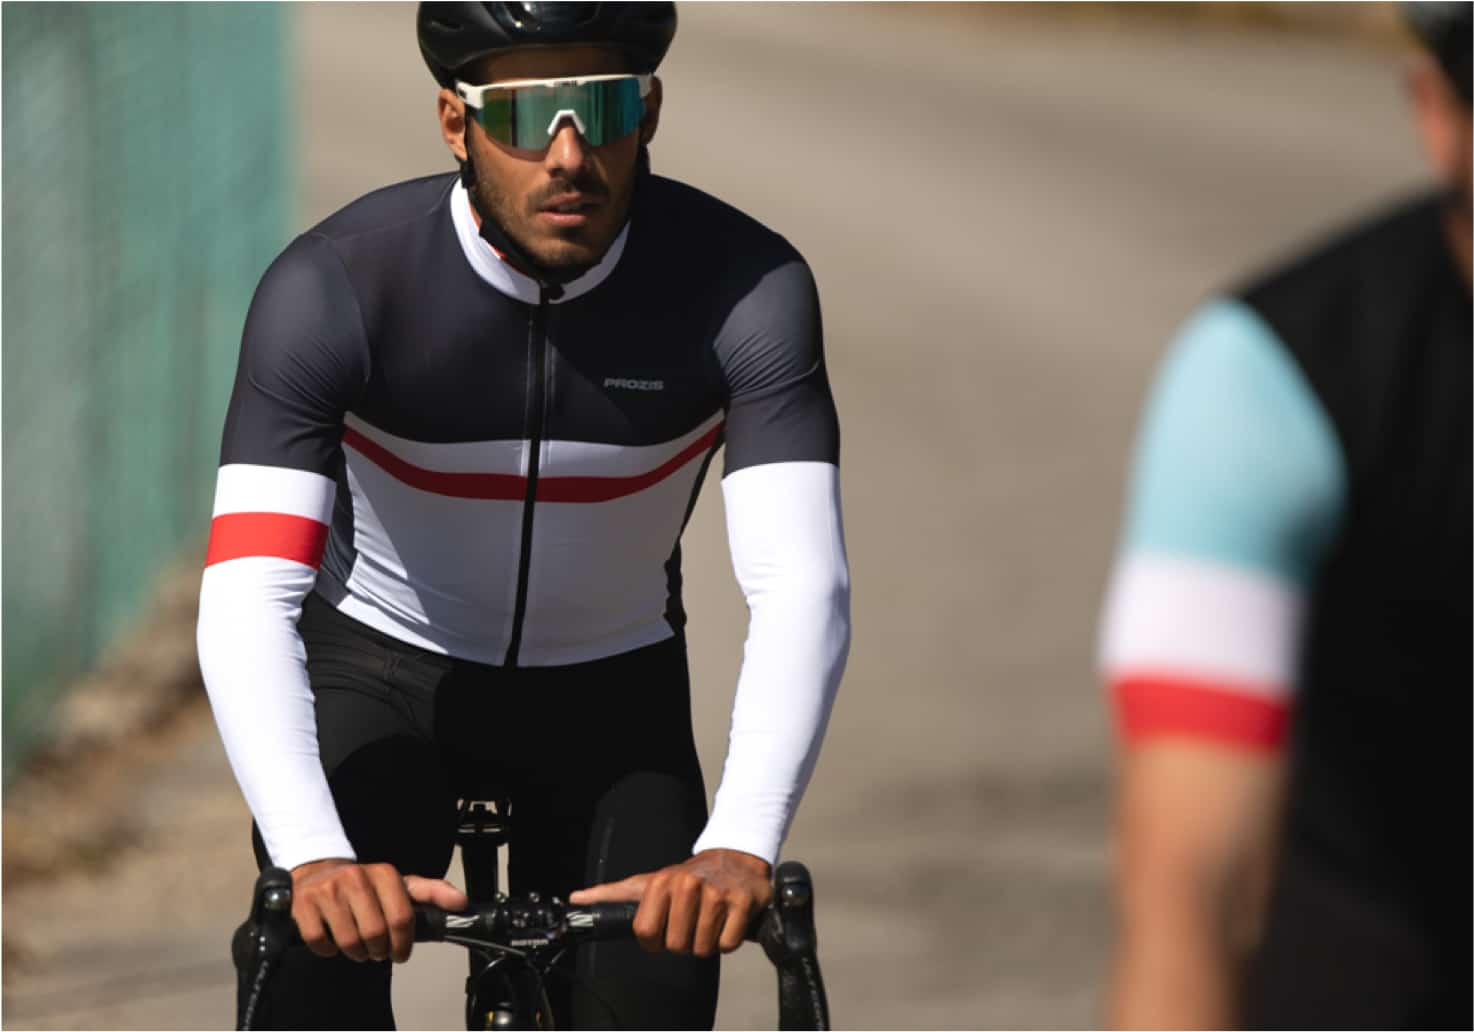 X-Cycle SS Jersey - Elite